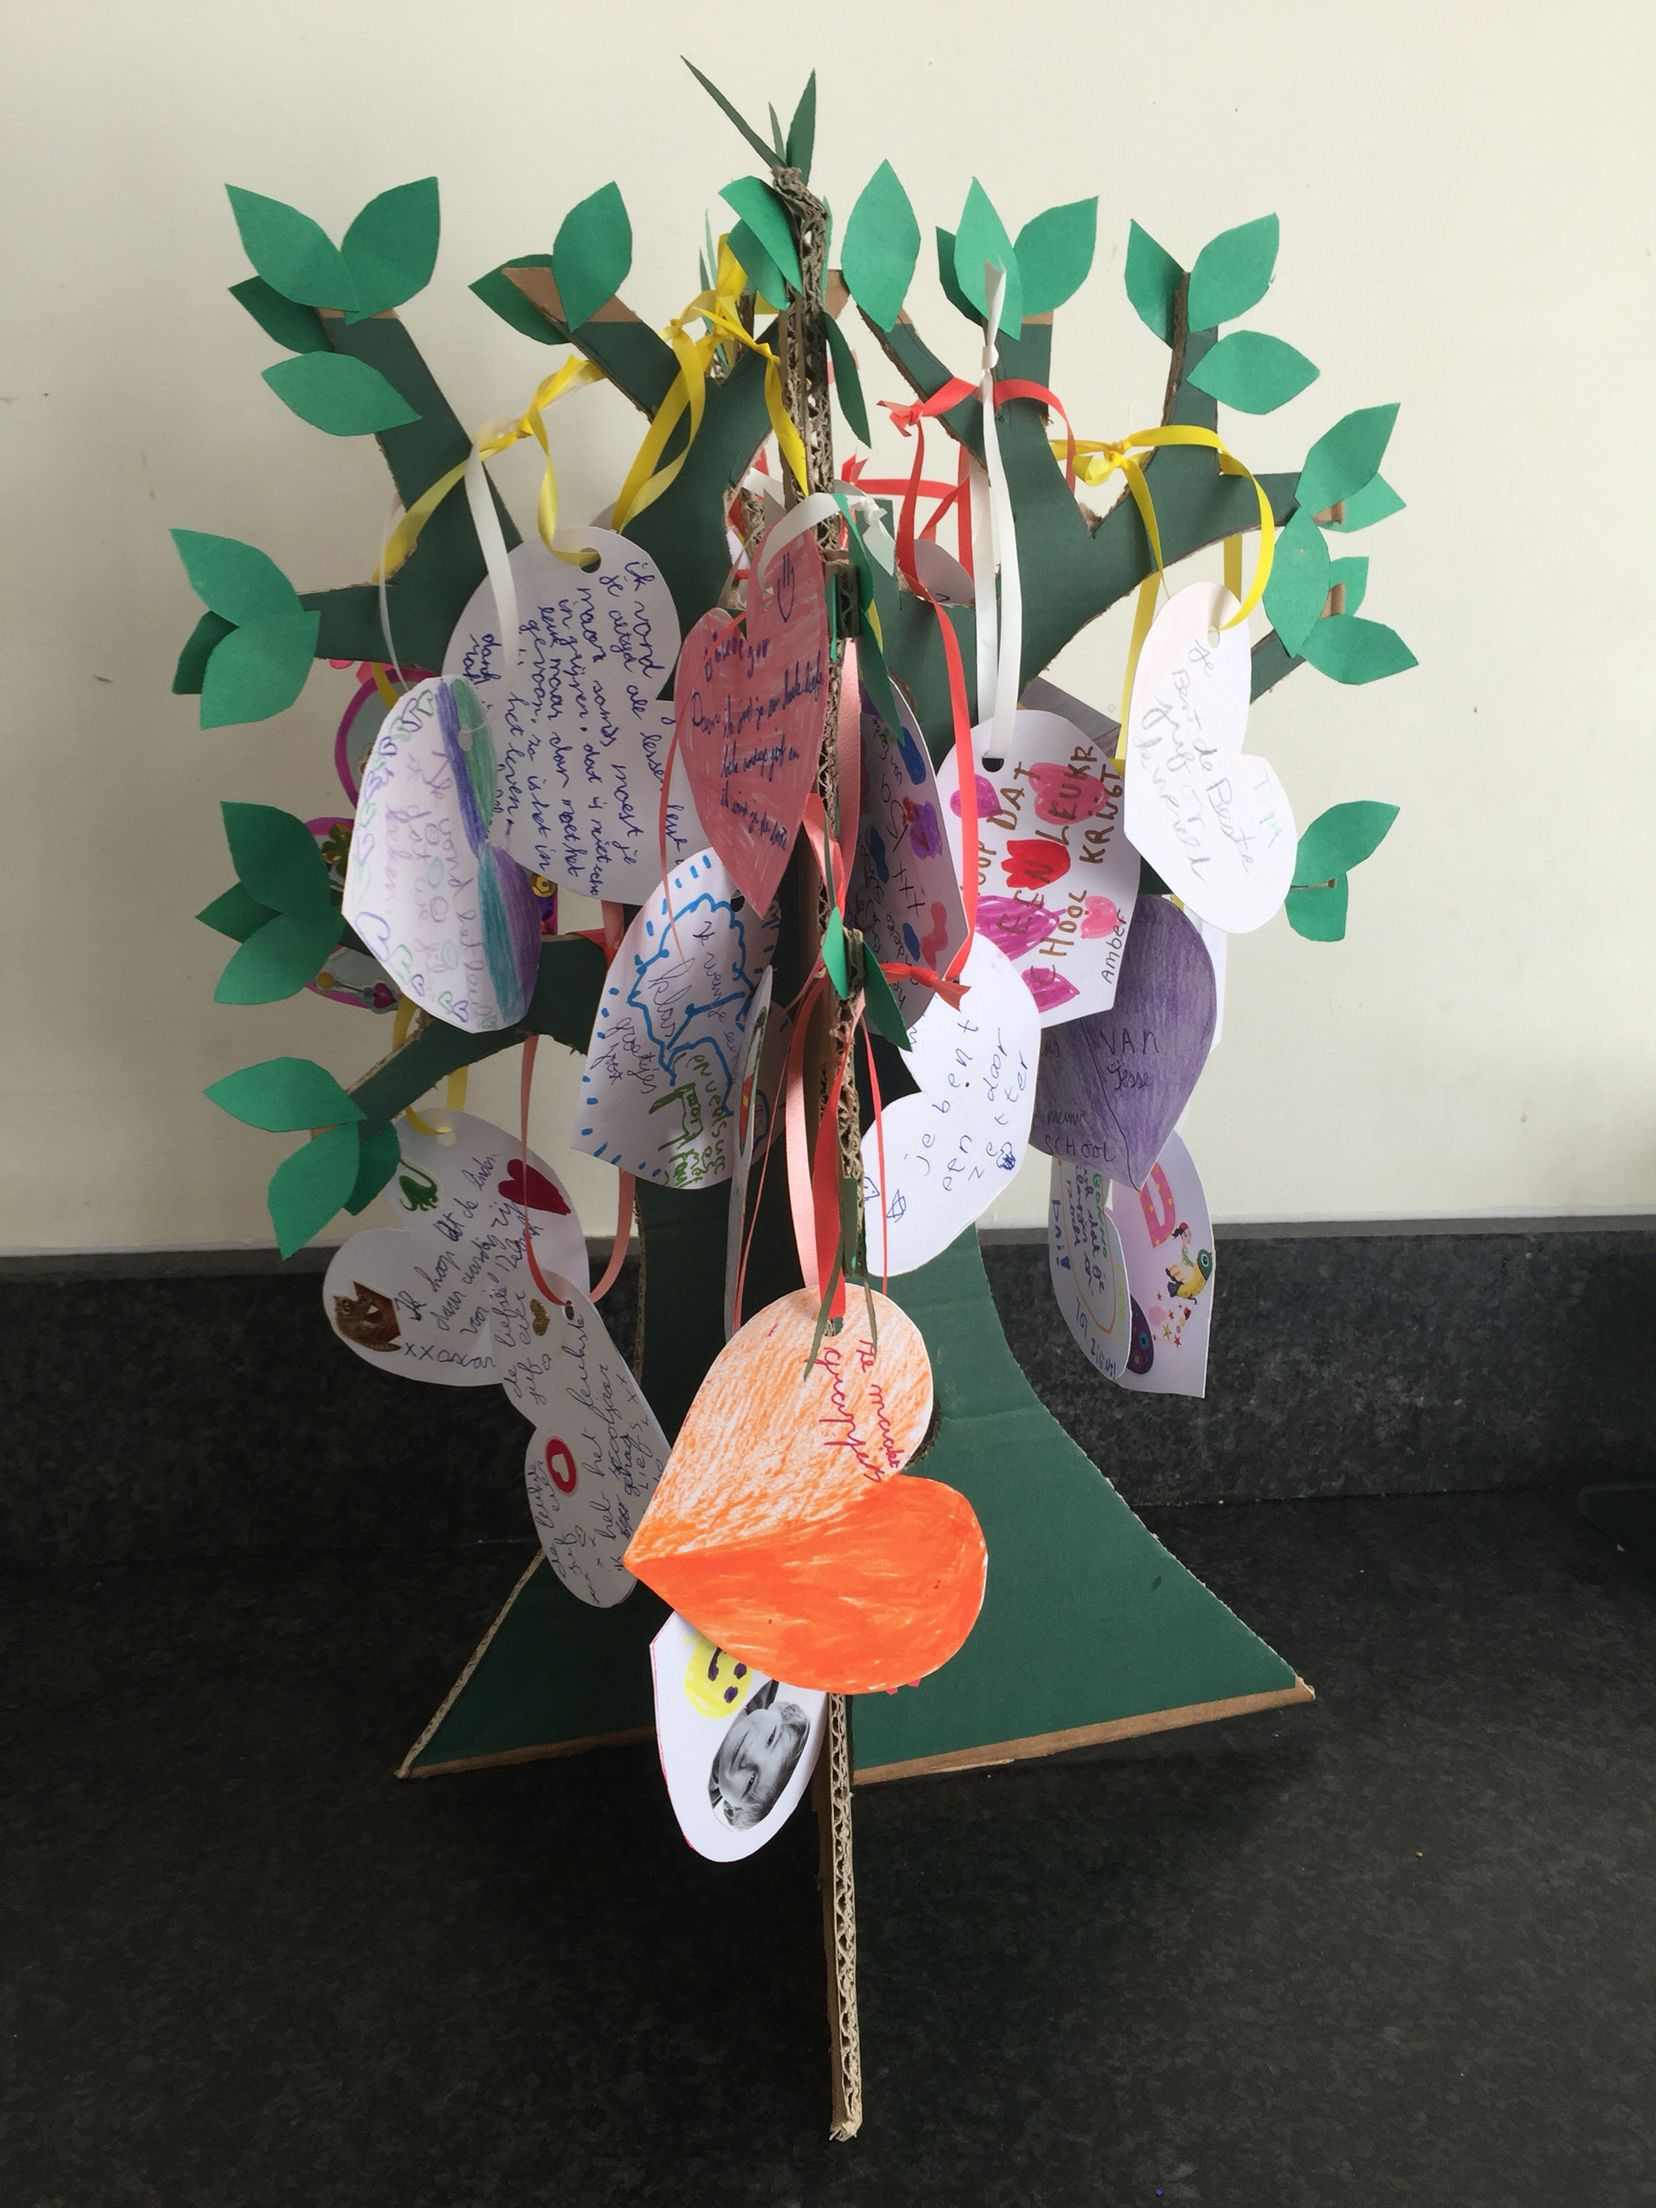 An end of Year 'good bye' for the teacher tree with messages from the students what they will remember about the teacher and what their wish is for next year😁